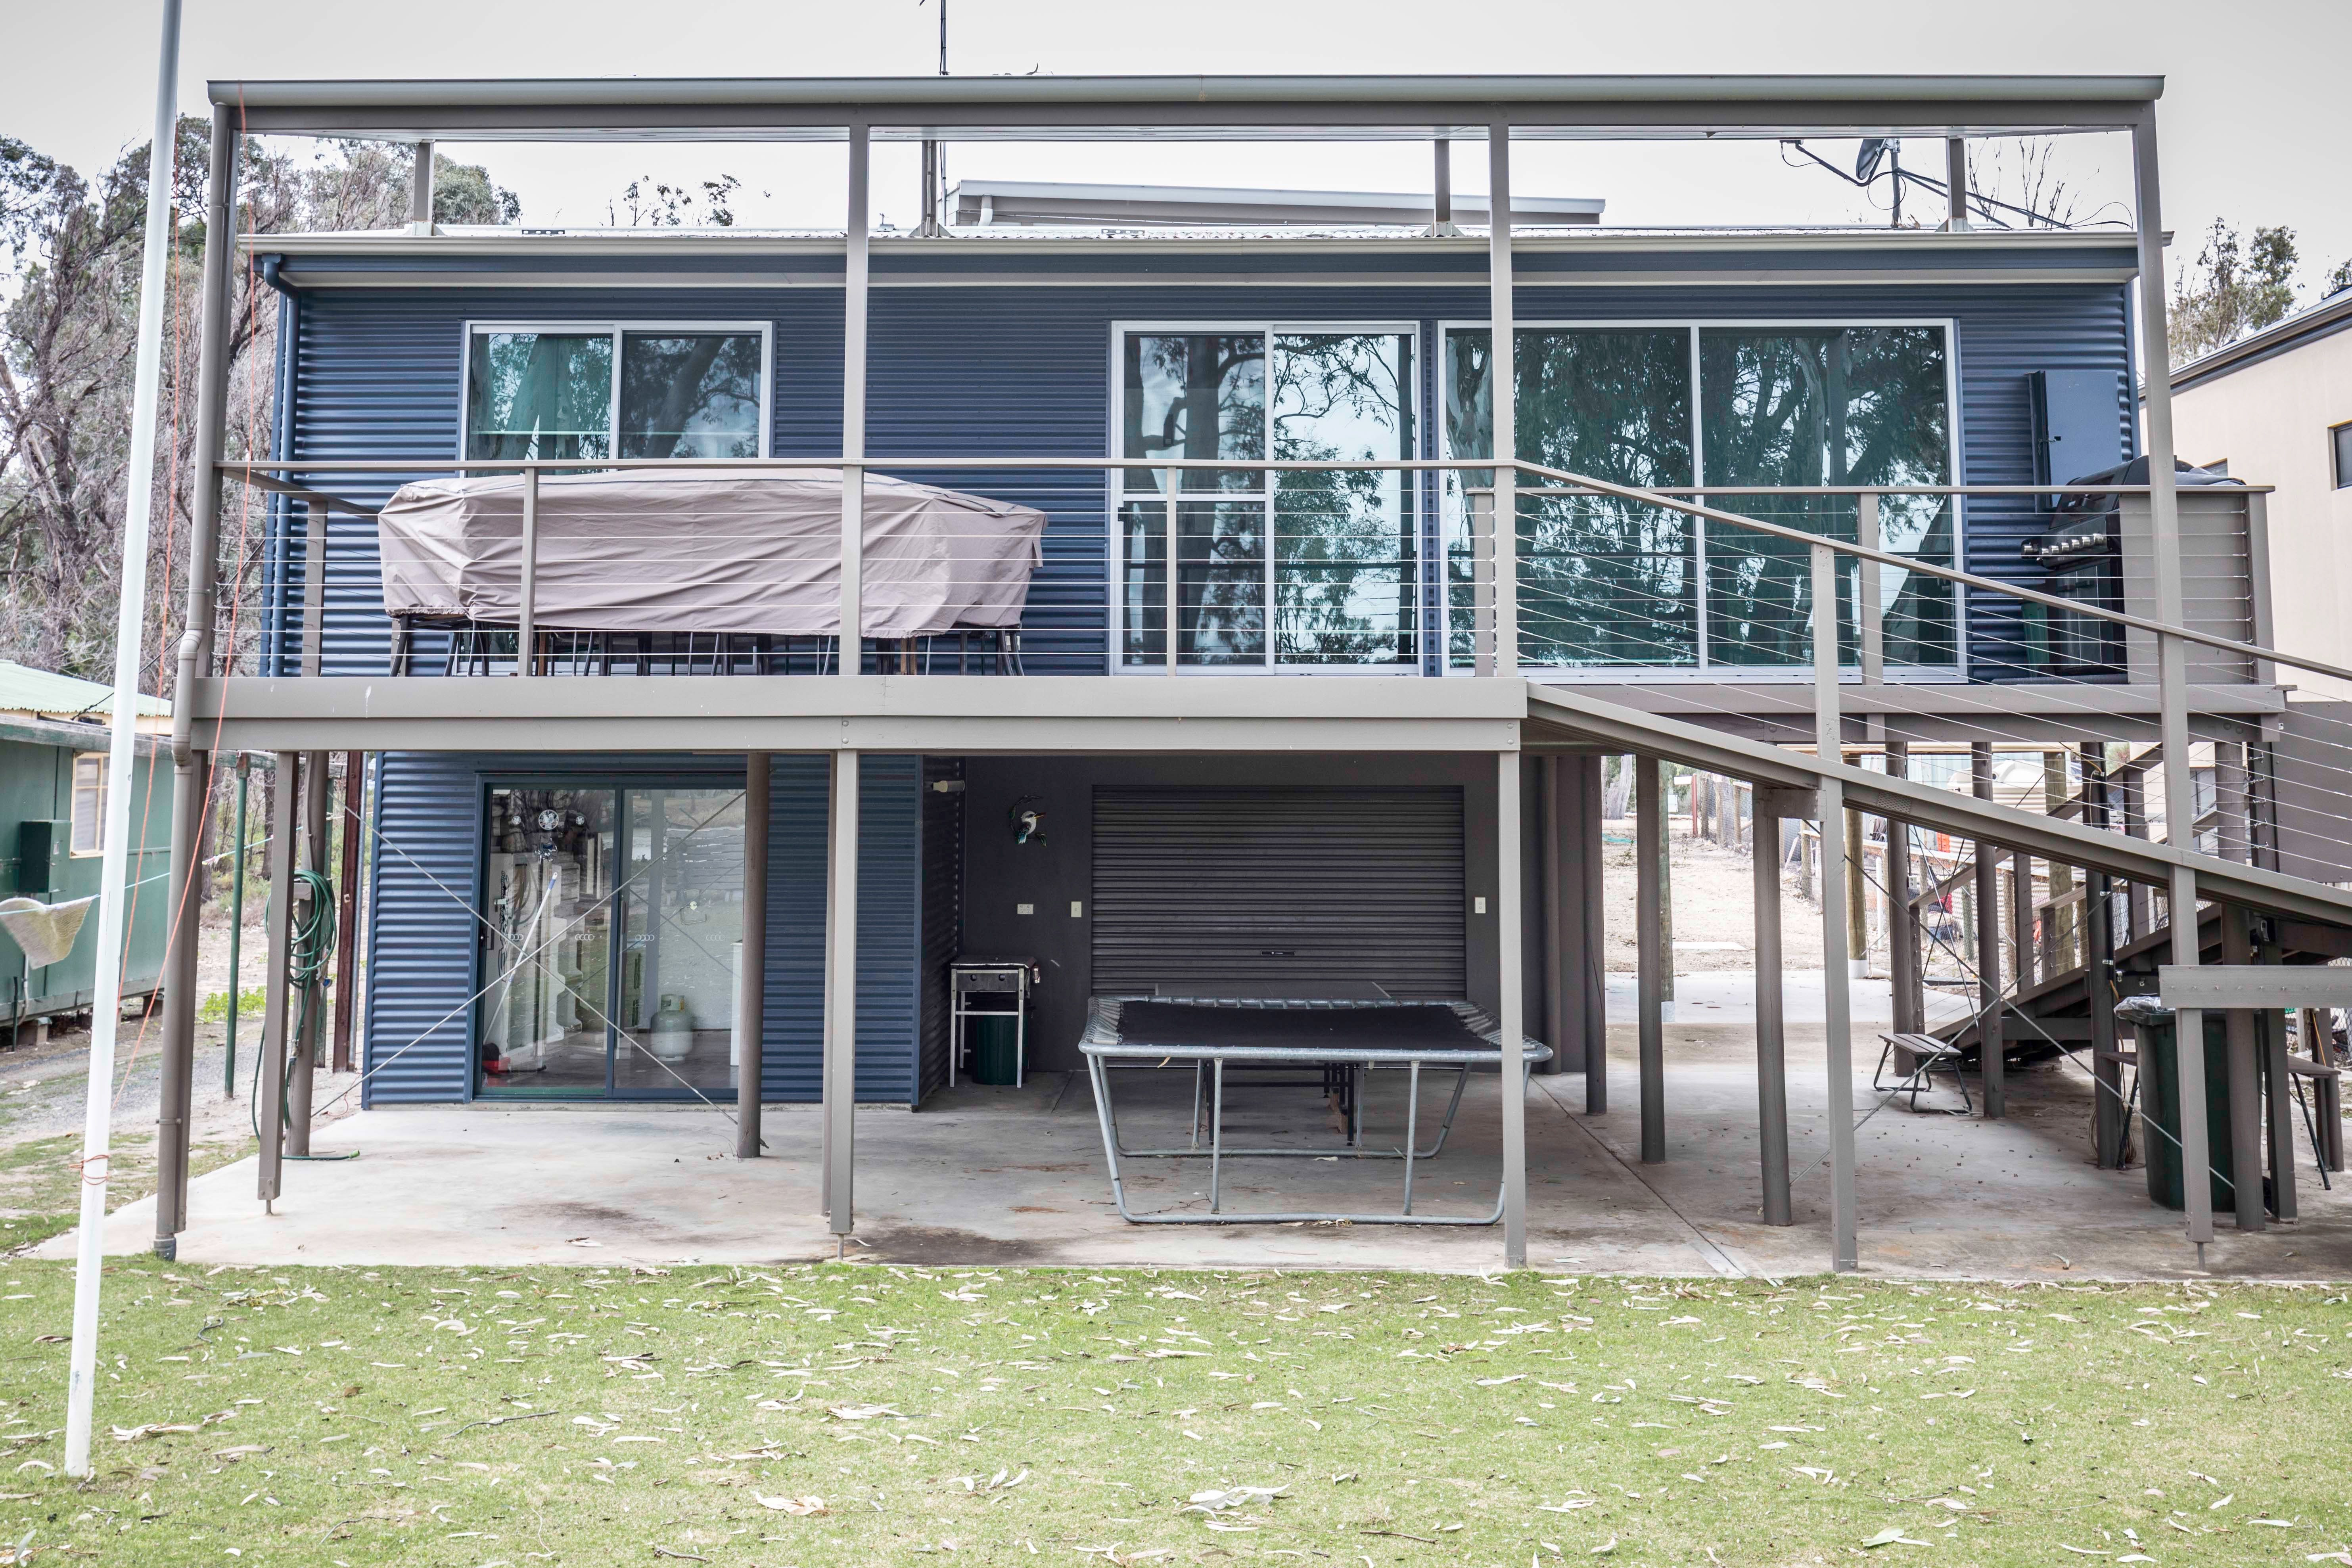 48 Echidna Ave Murbko -River Shack Rentals - Accommodation Fremantle